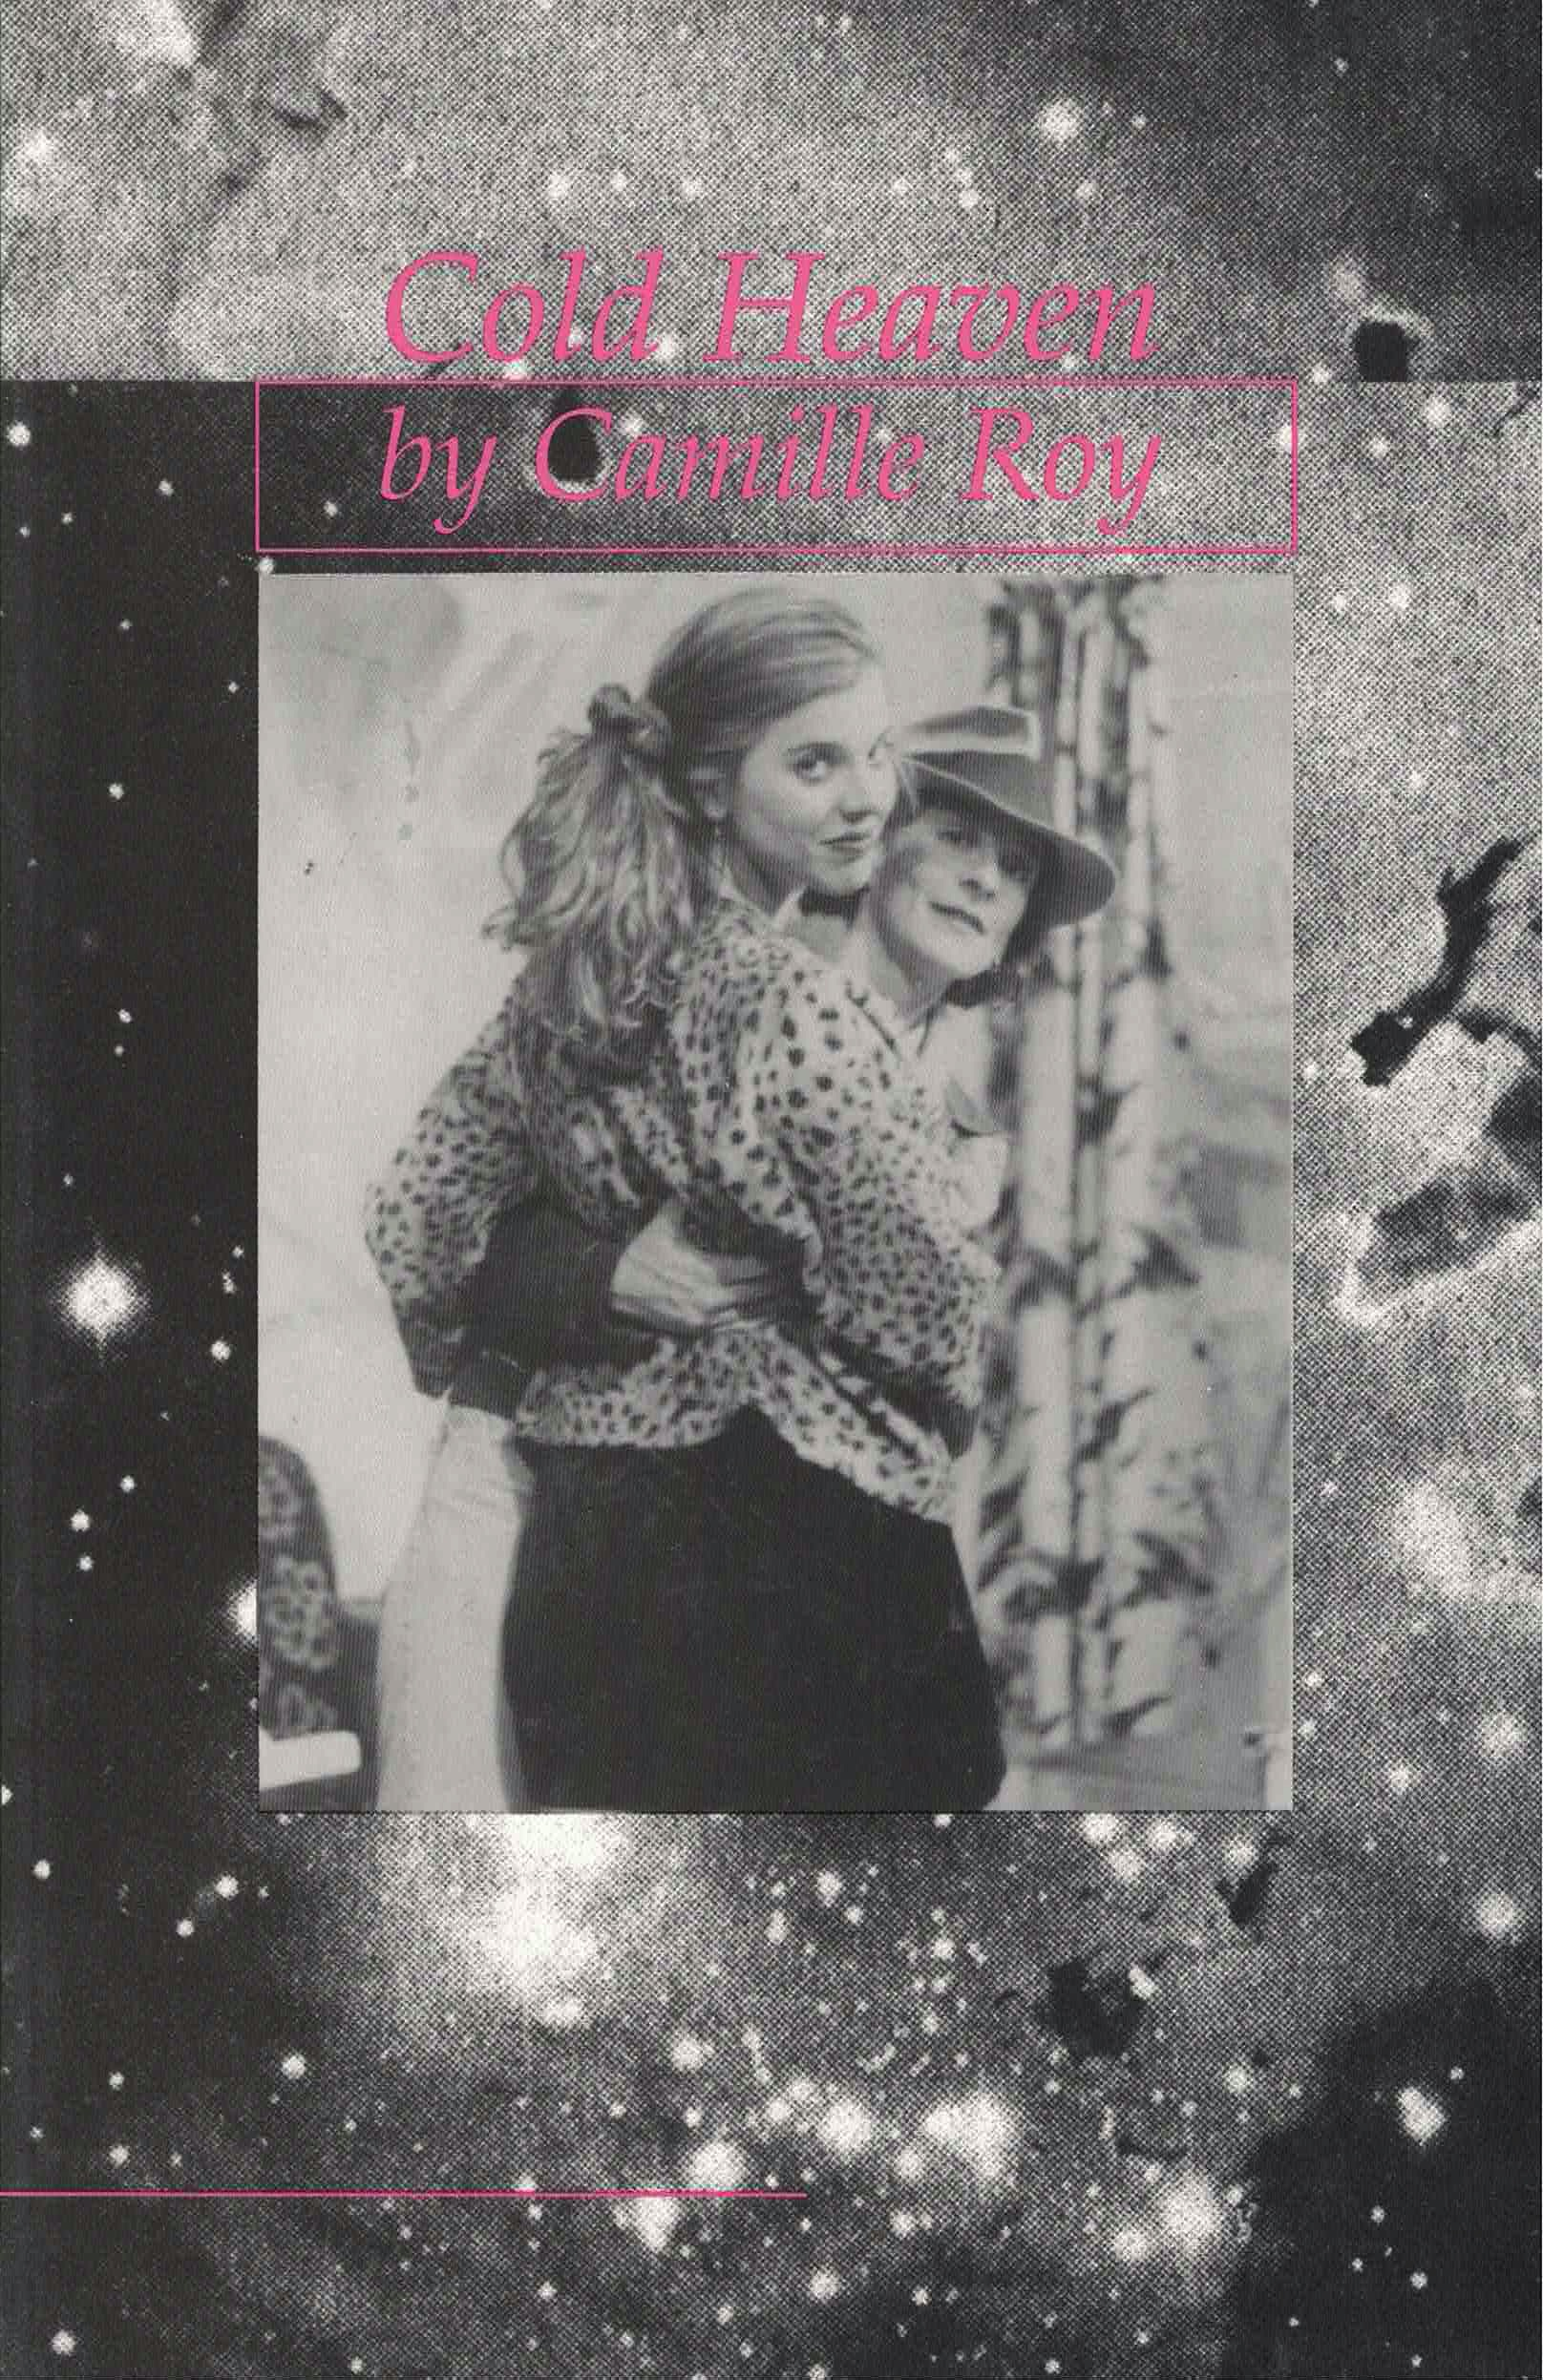 cover of Cold Heaven by Camille Roy; b&w photo of two women with their arms around each other, background is b&w image of the galaxy